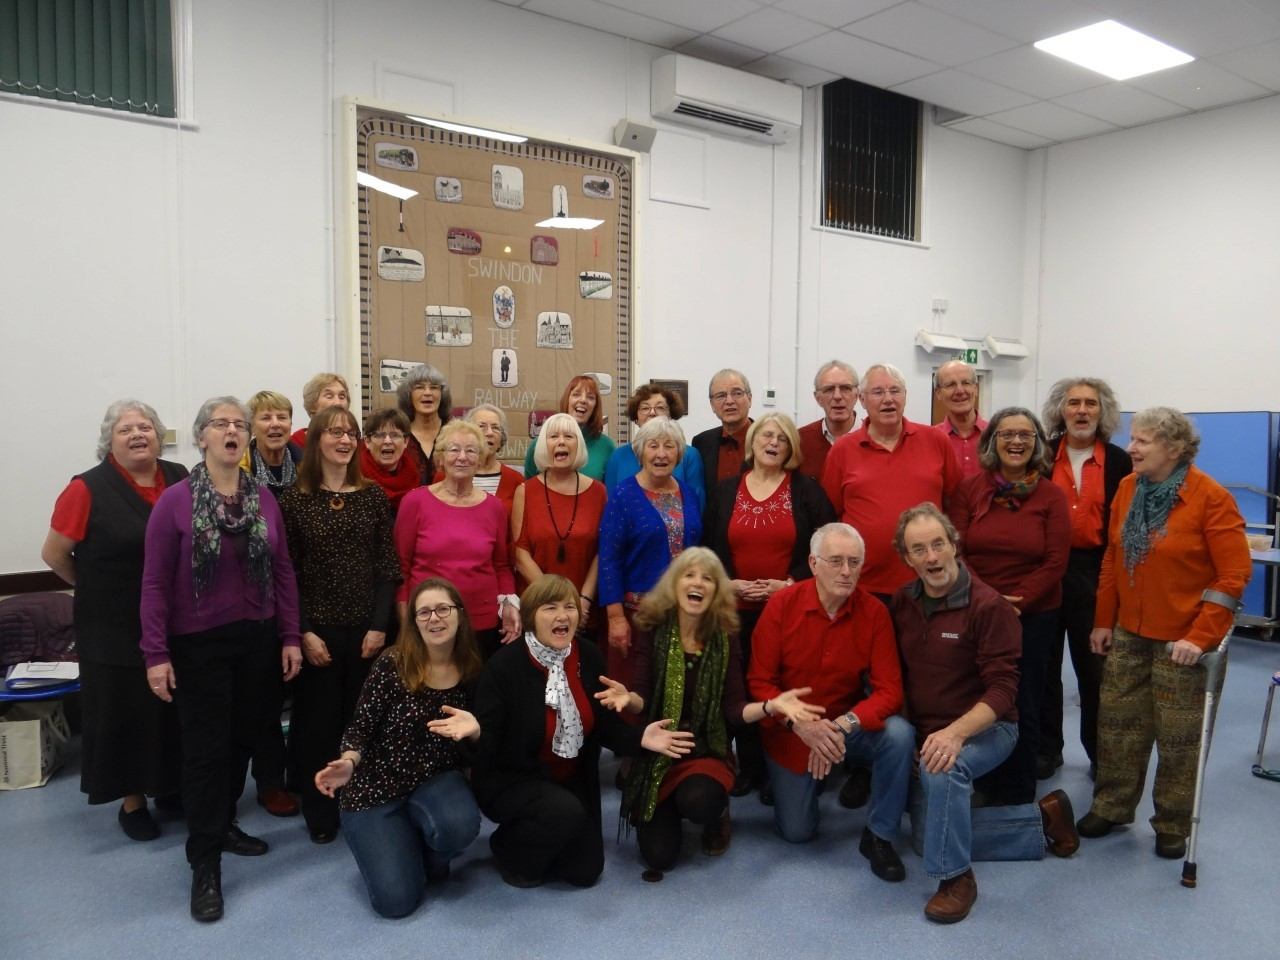 Sing the natural way with the Swindon Community Choir